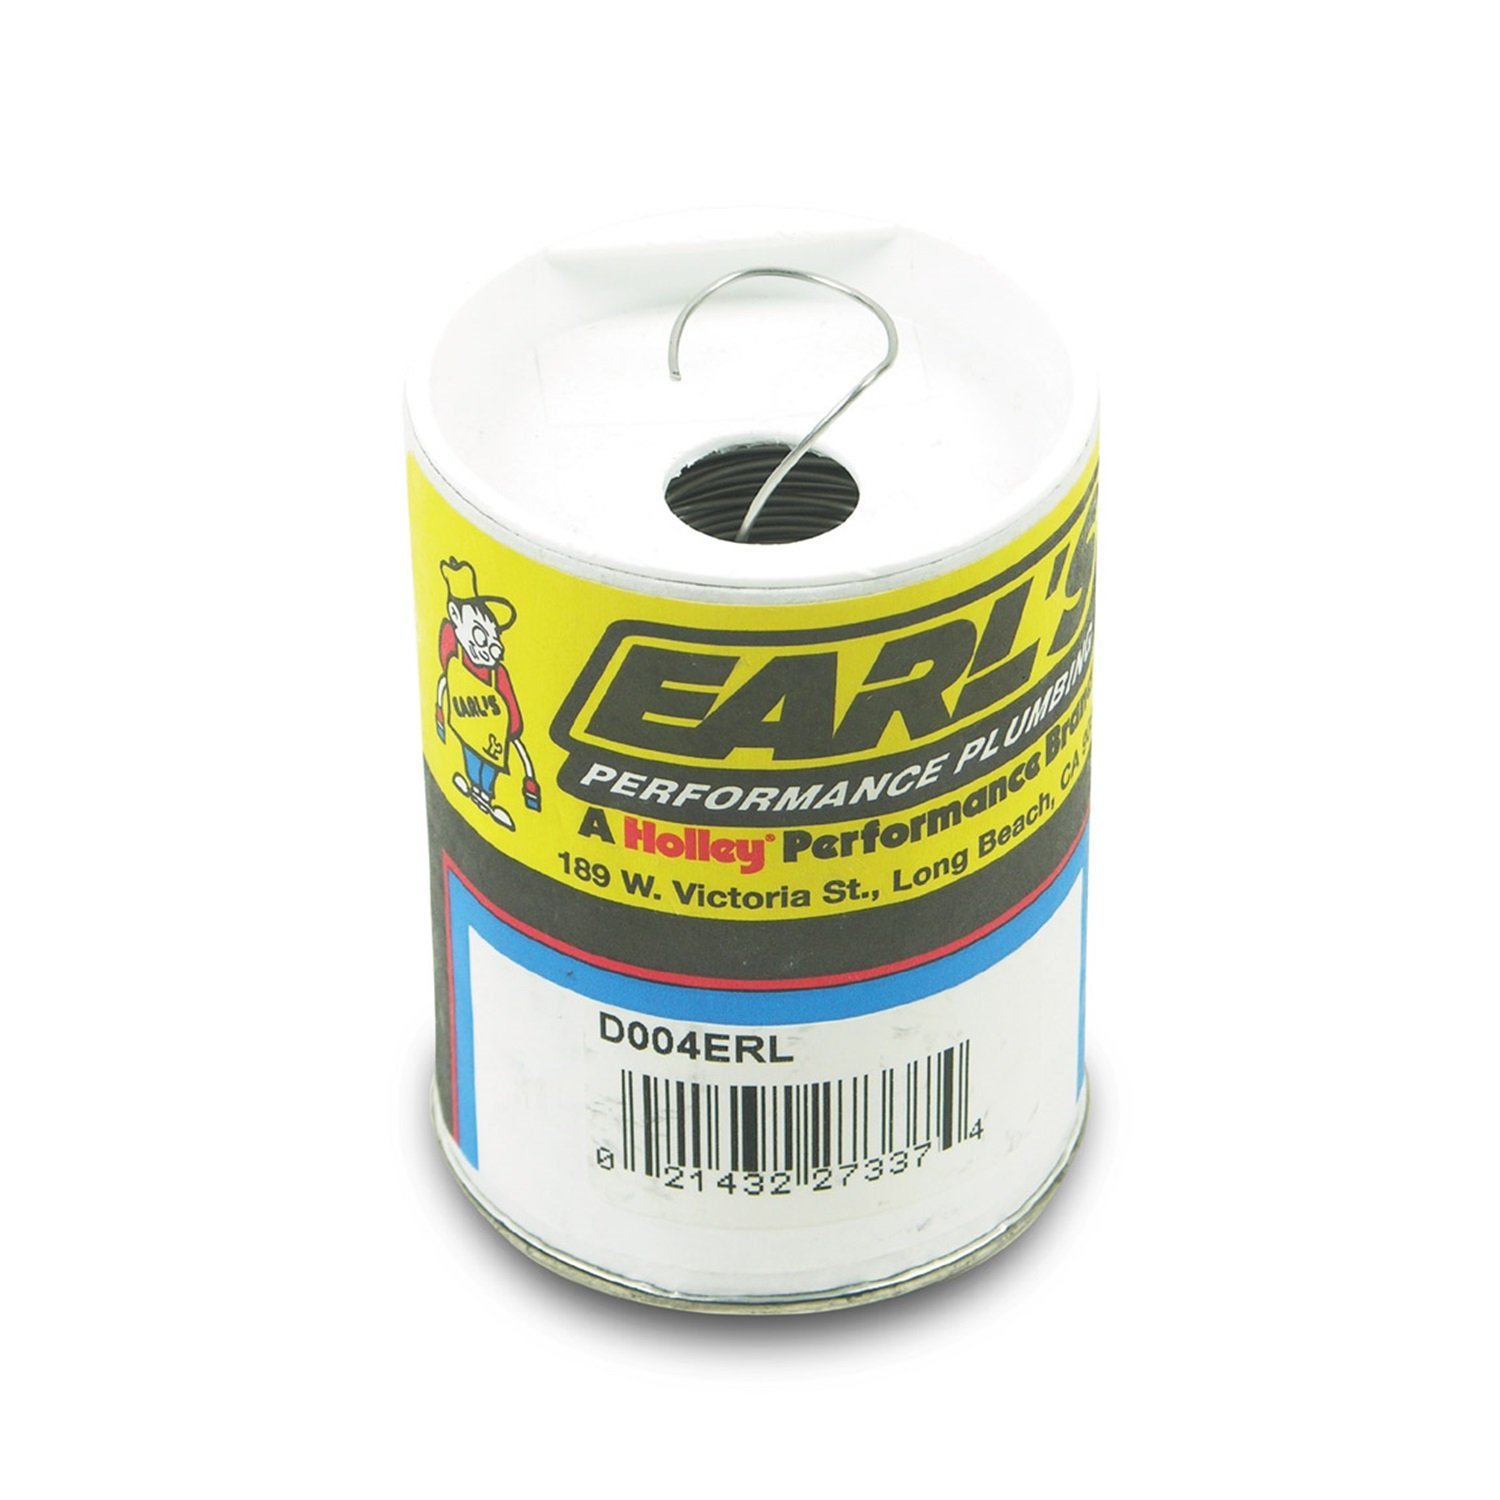 Earl's D002ERL Stainless Steel Safety Wire Earls Plumbing